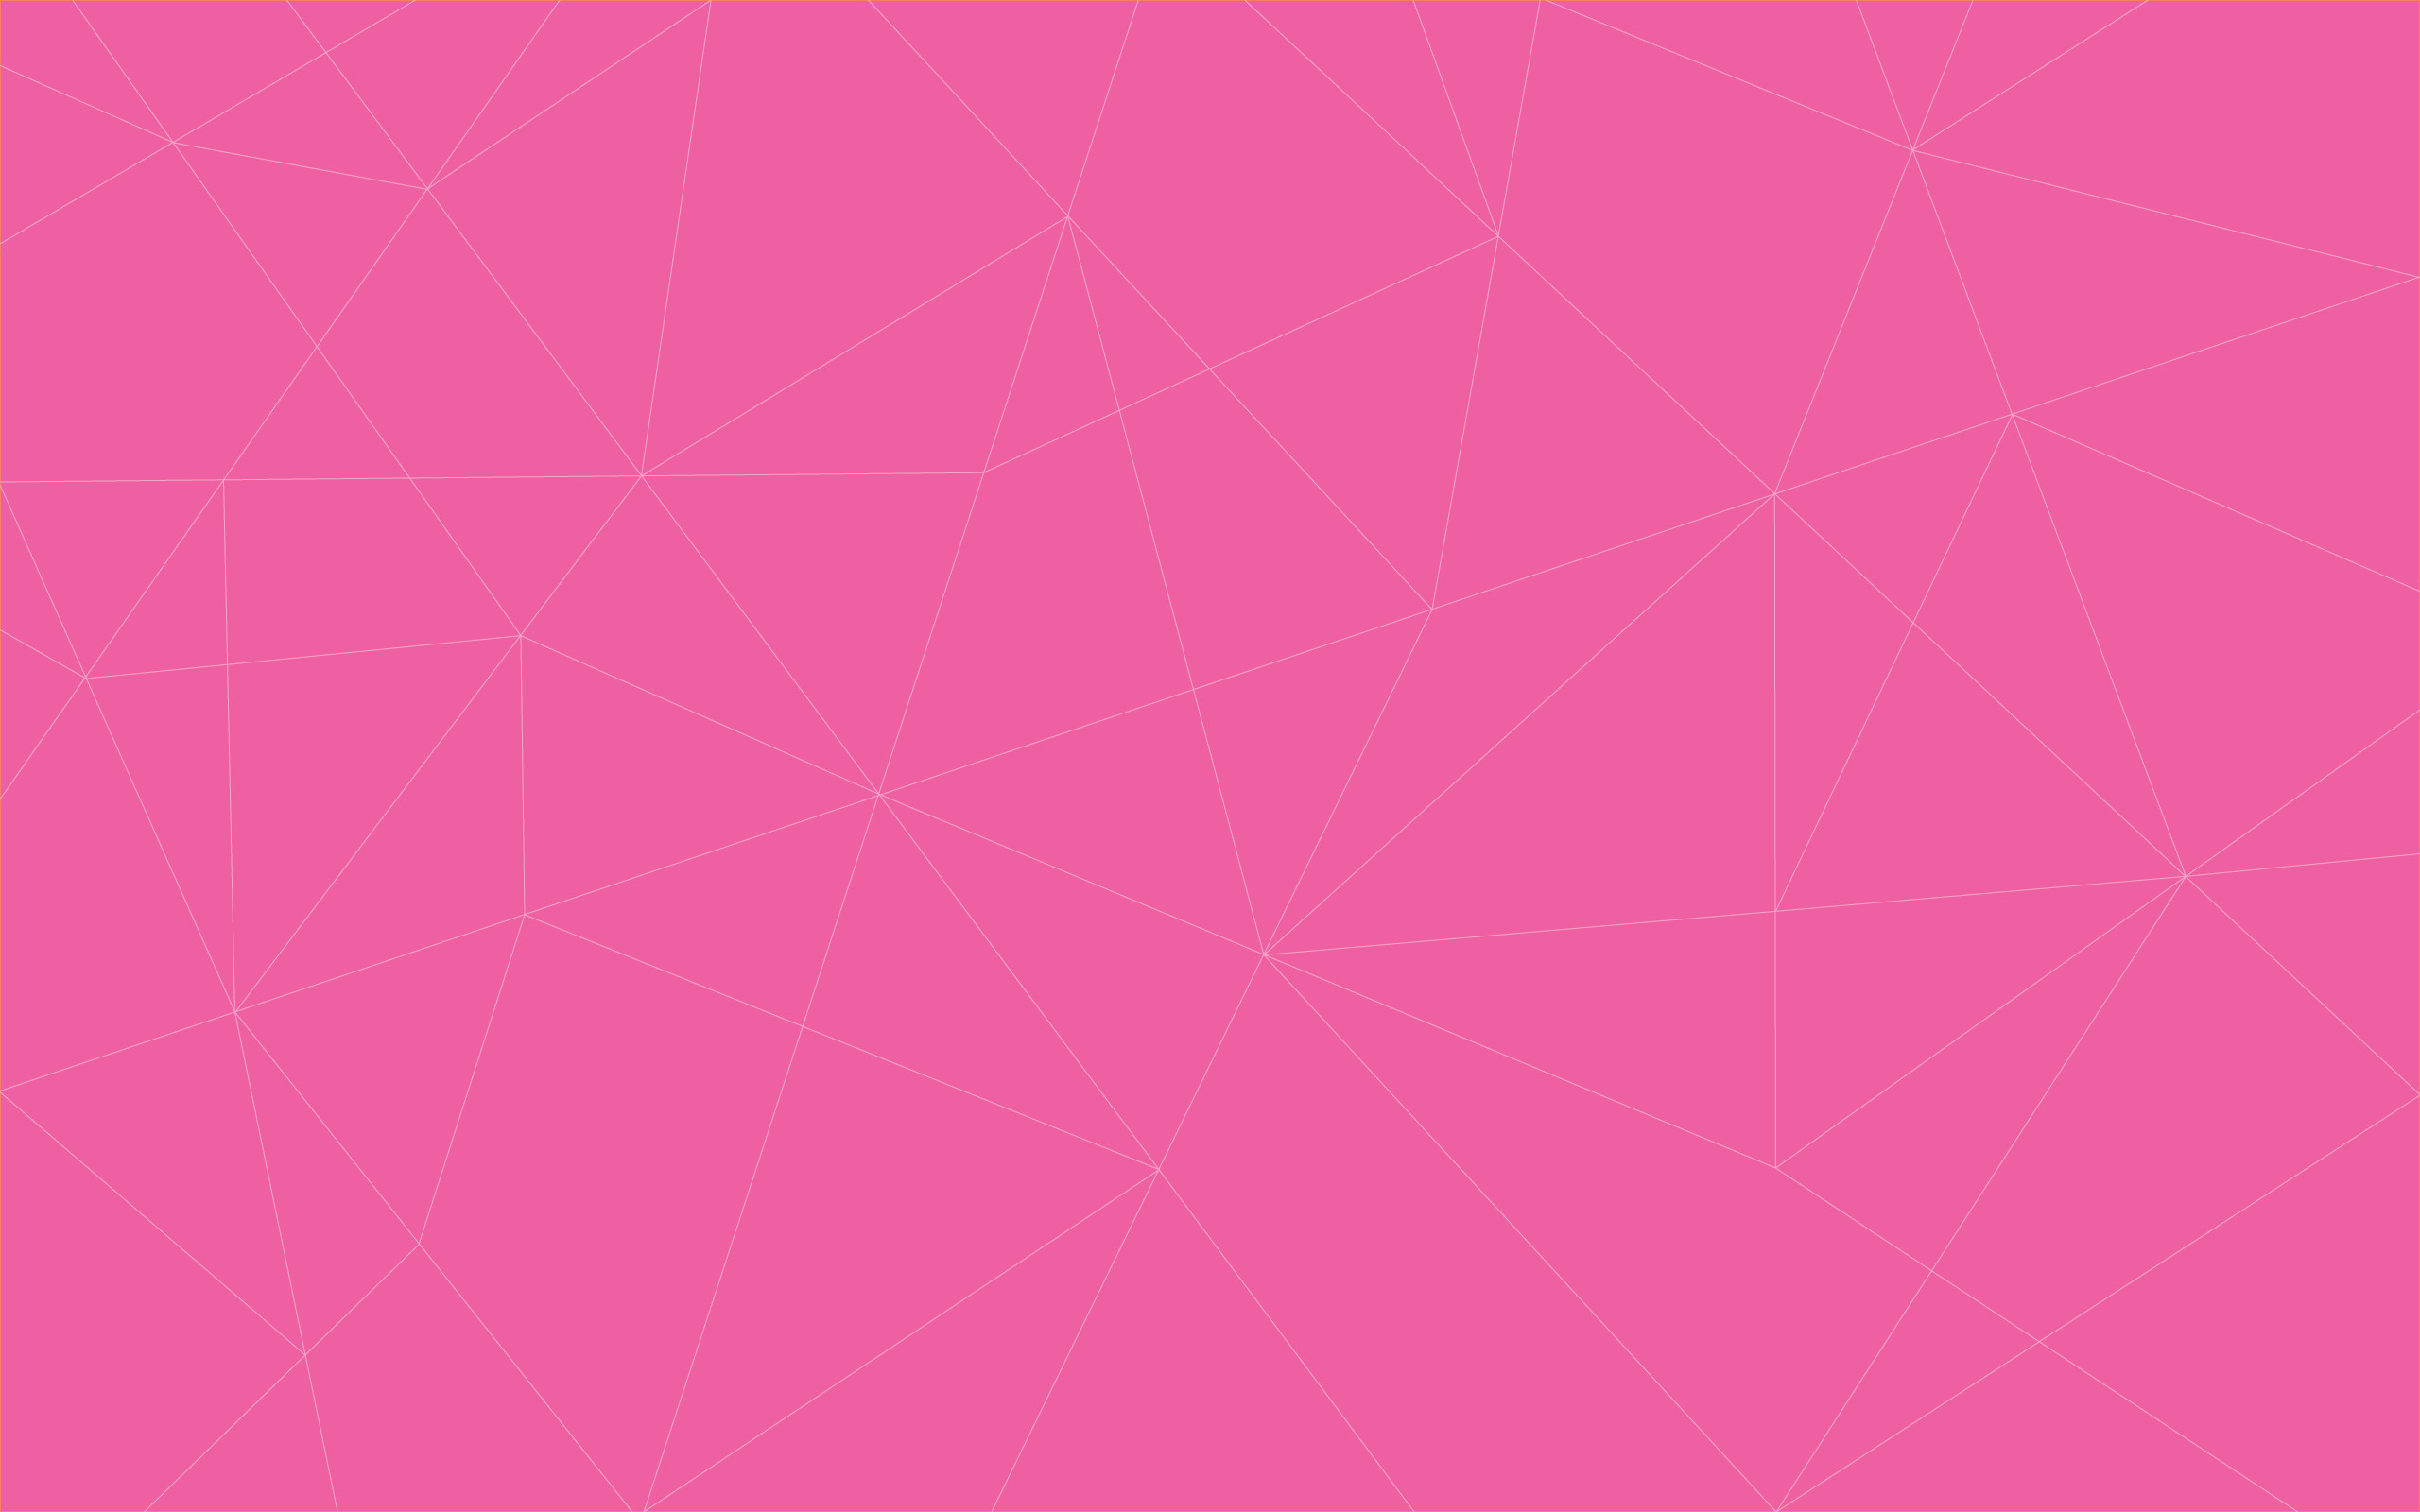 30/12/2015: Pink, px